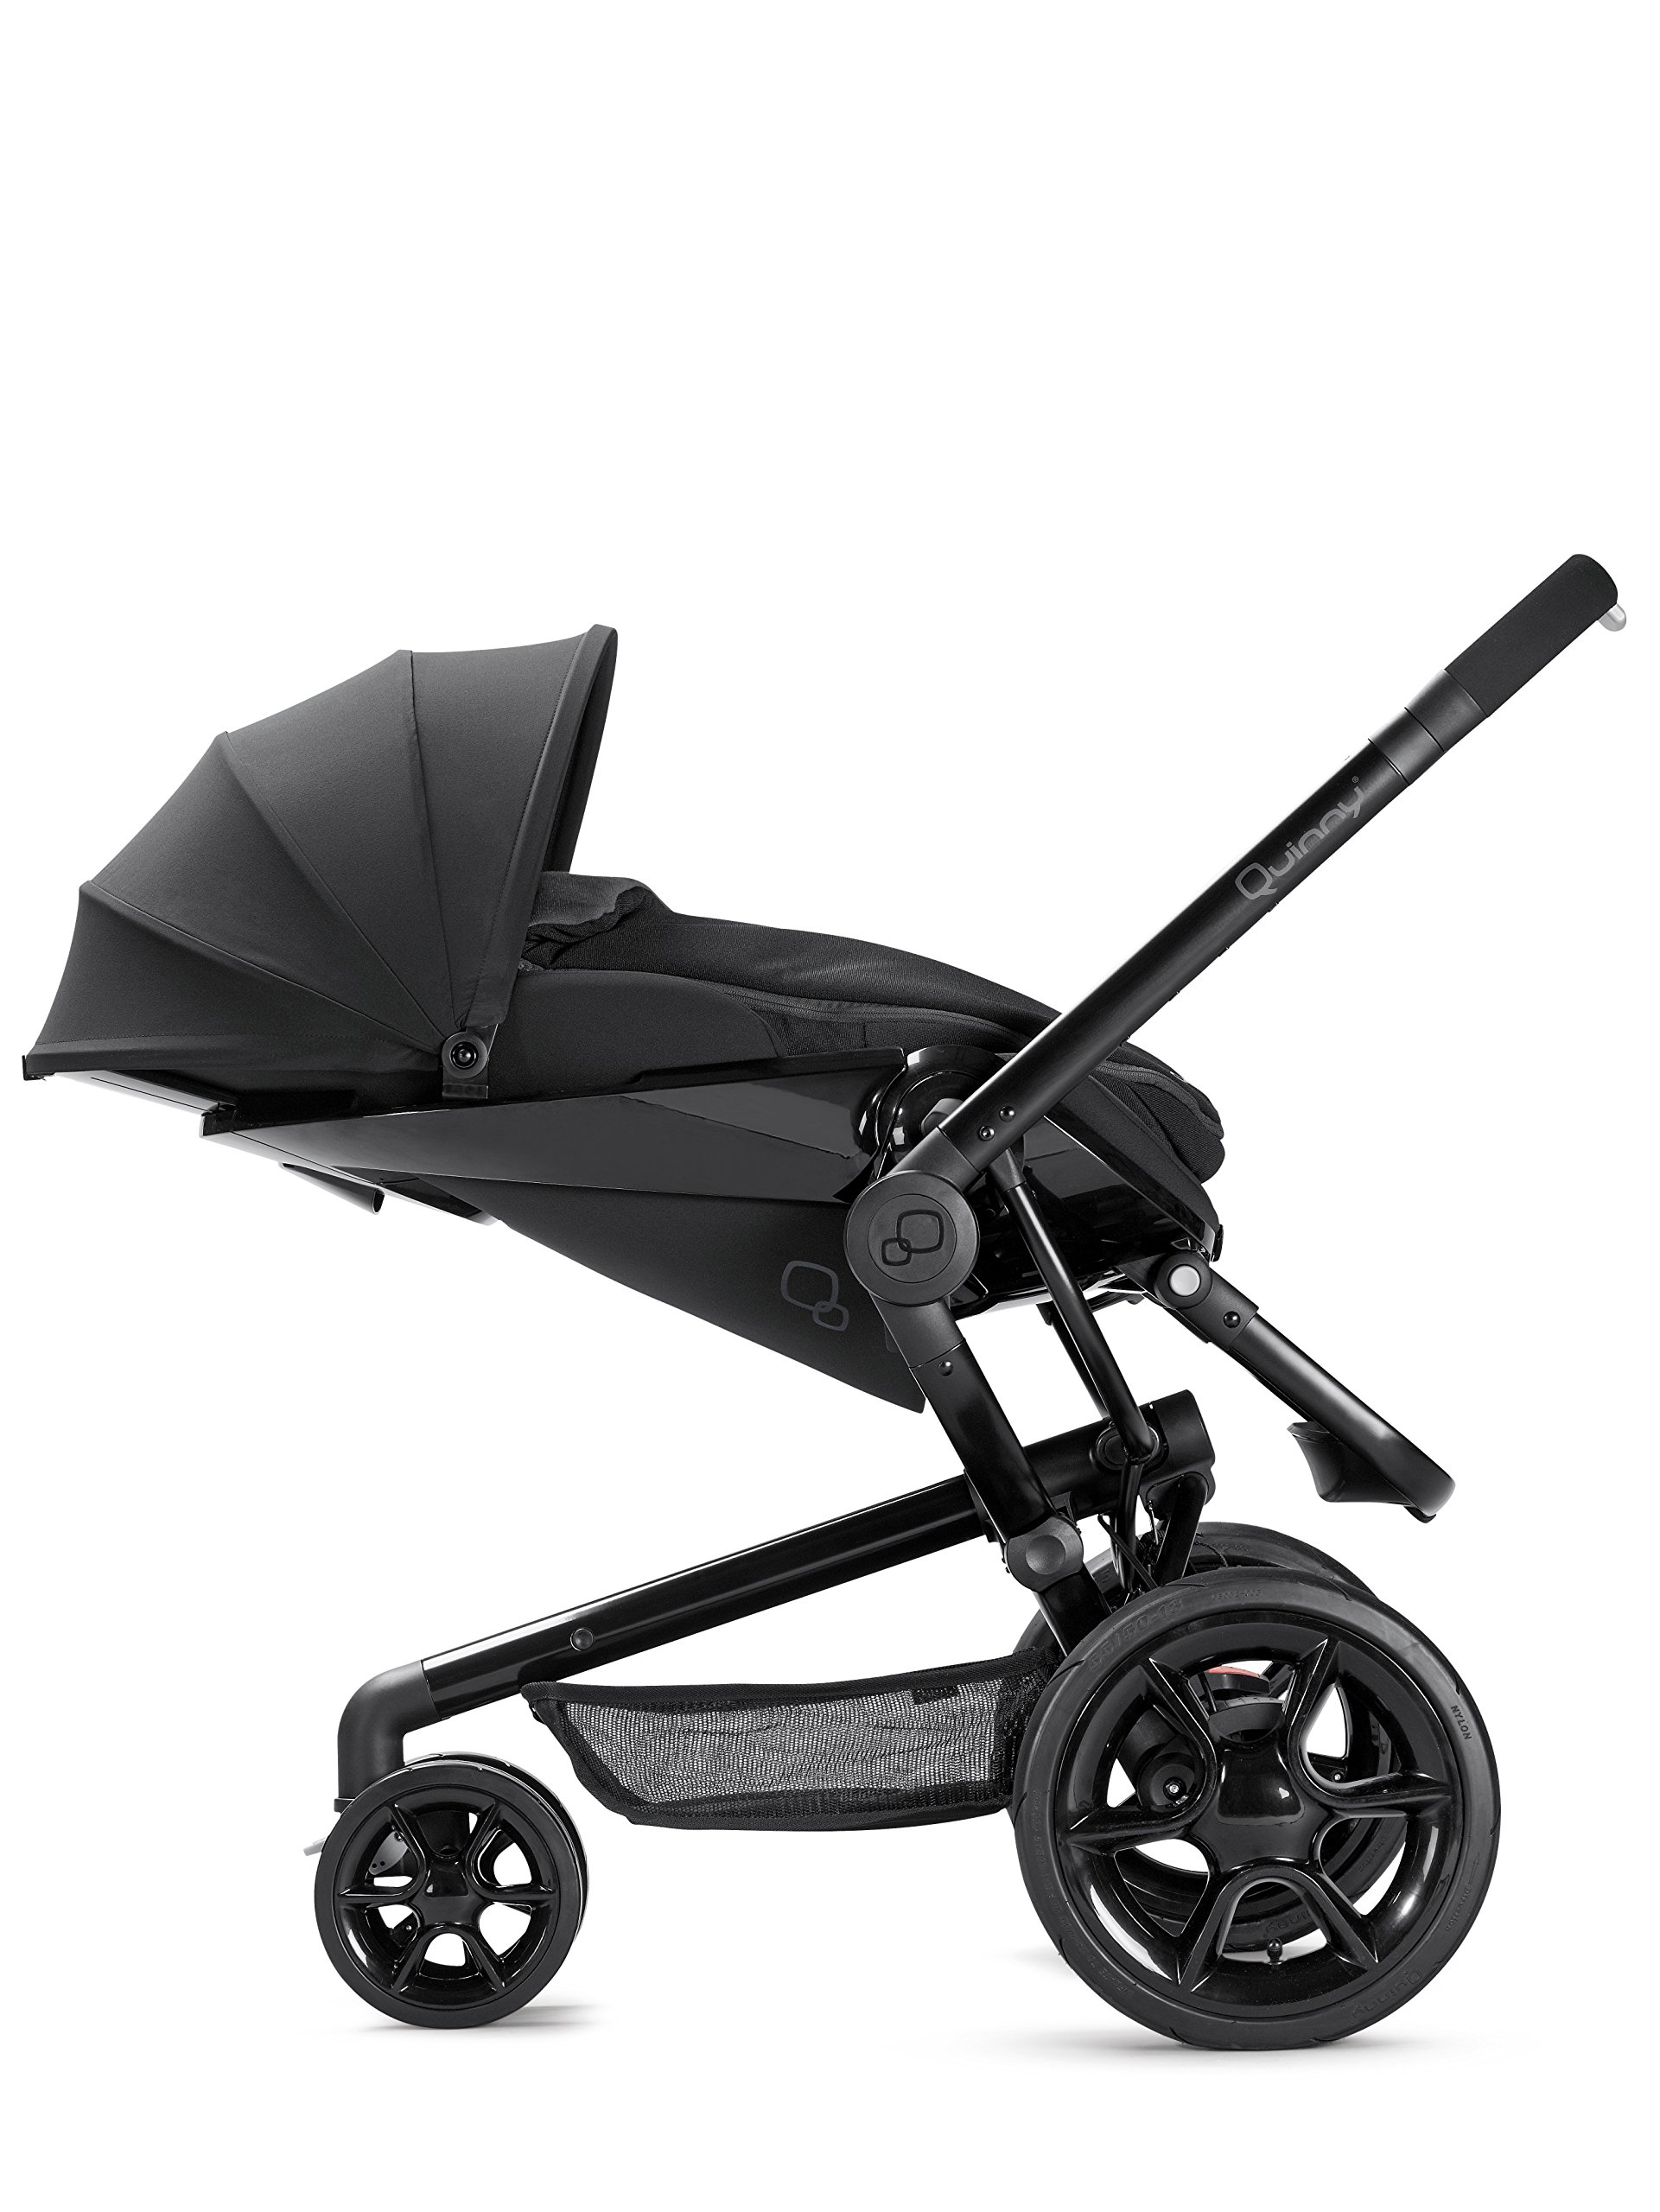 Quinny Moodd Pushchair Frame, Black Devotion Maxi-Cosi Stylish urban pushchair with cozy baby nest - suitable from birth to 15 kg (approx. 3.5 years) Foam filled comfort tyres and lockable front swivel wheels for a smooth ride Reversible seat unit with 3 recline position (including lie-flat options for newborns) 6